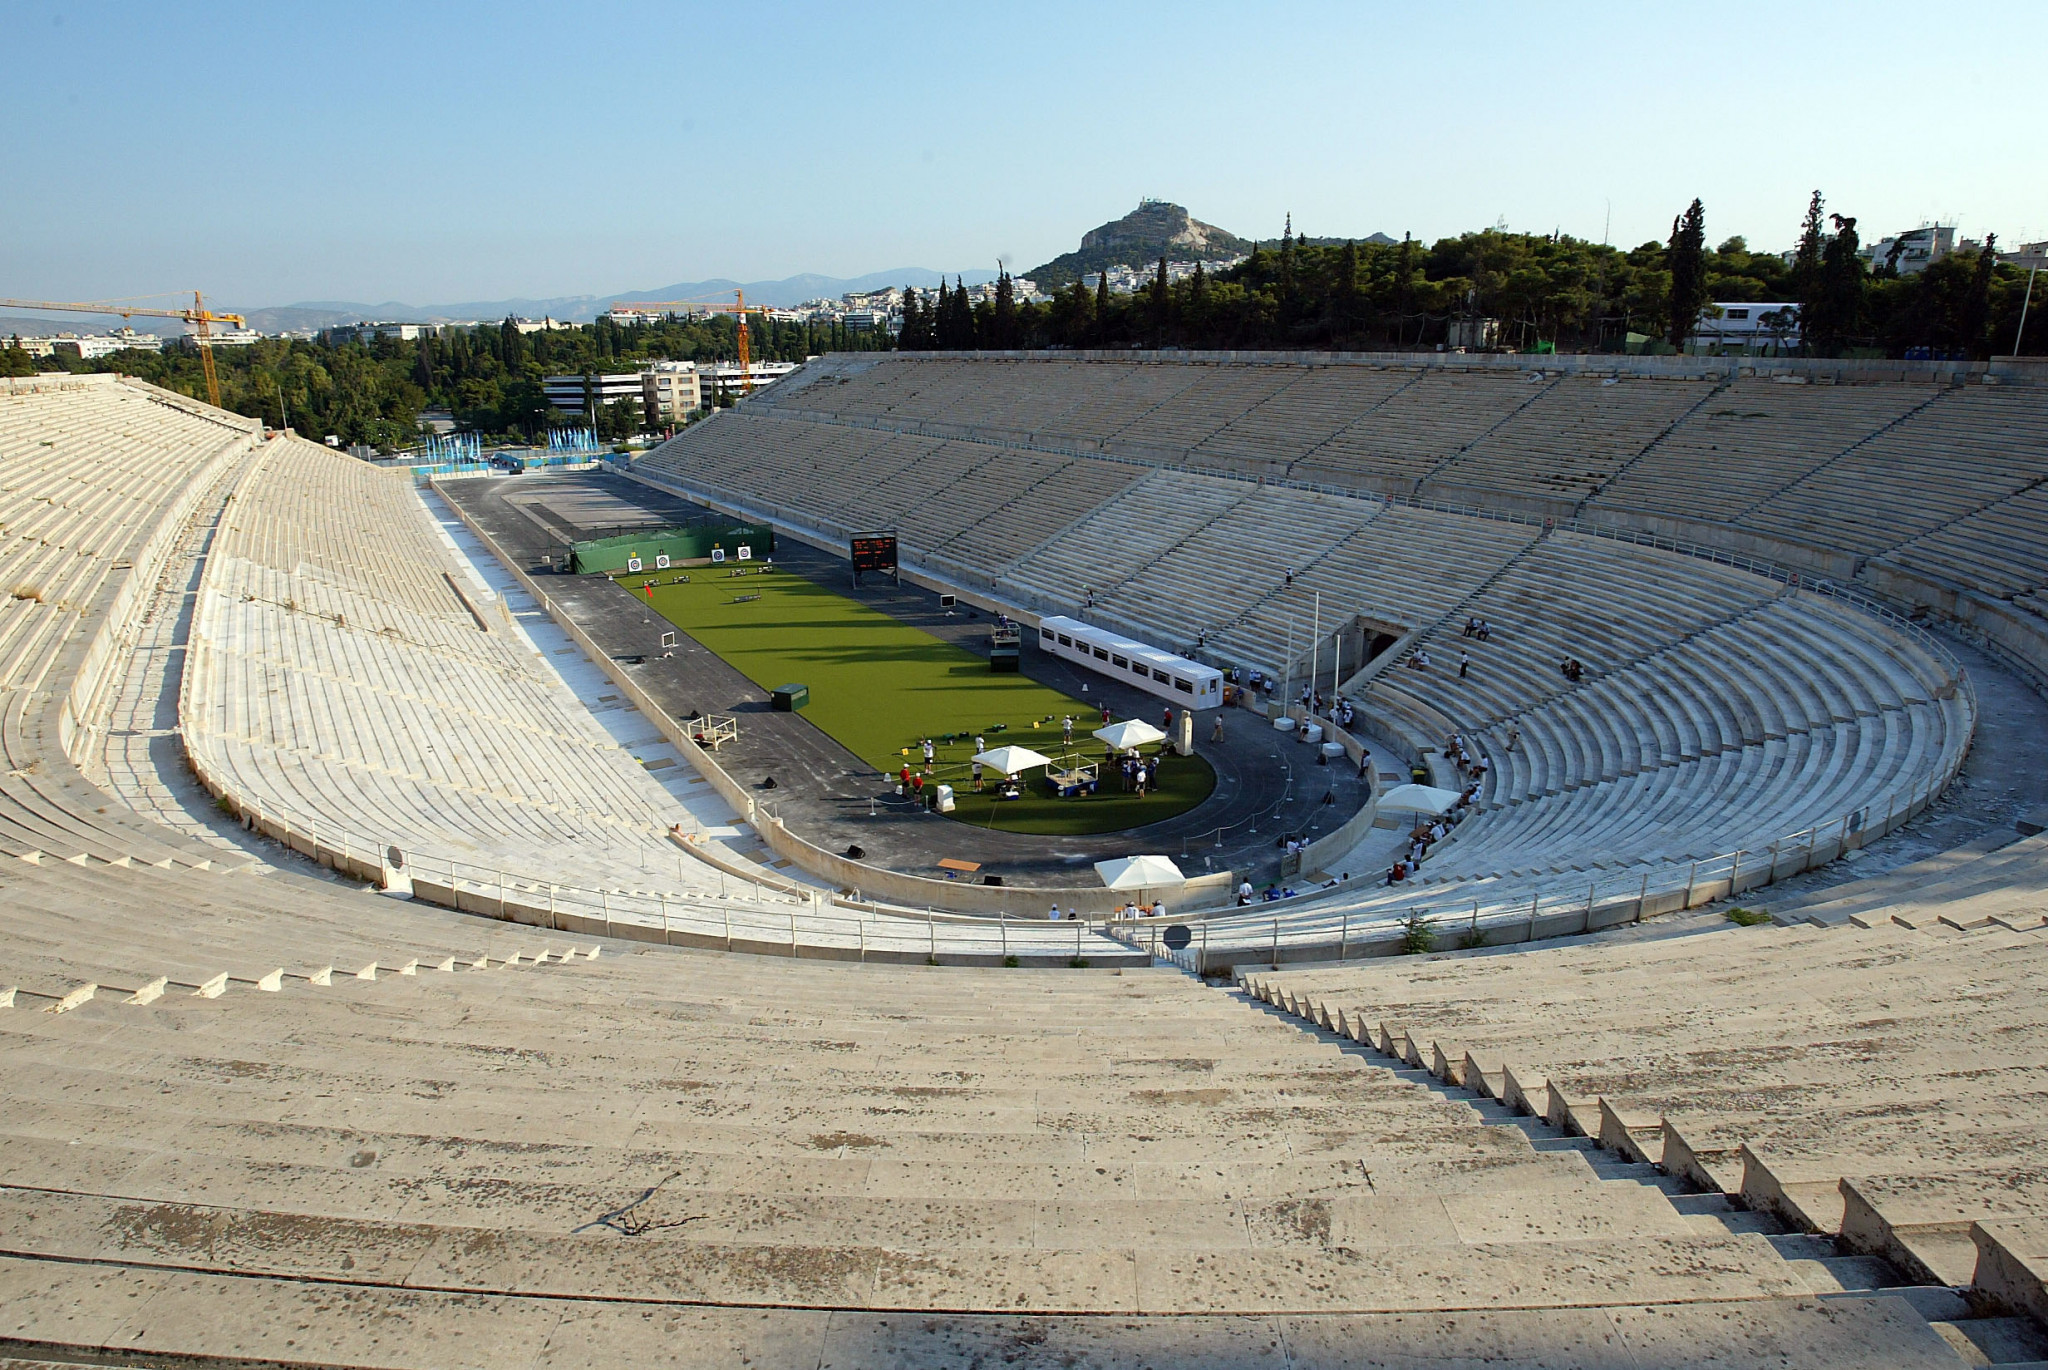 Tomorrow's handover ceremony at the Panathinaiko Stadium has been significantly scaled back ©Getty Images